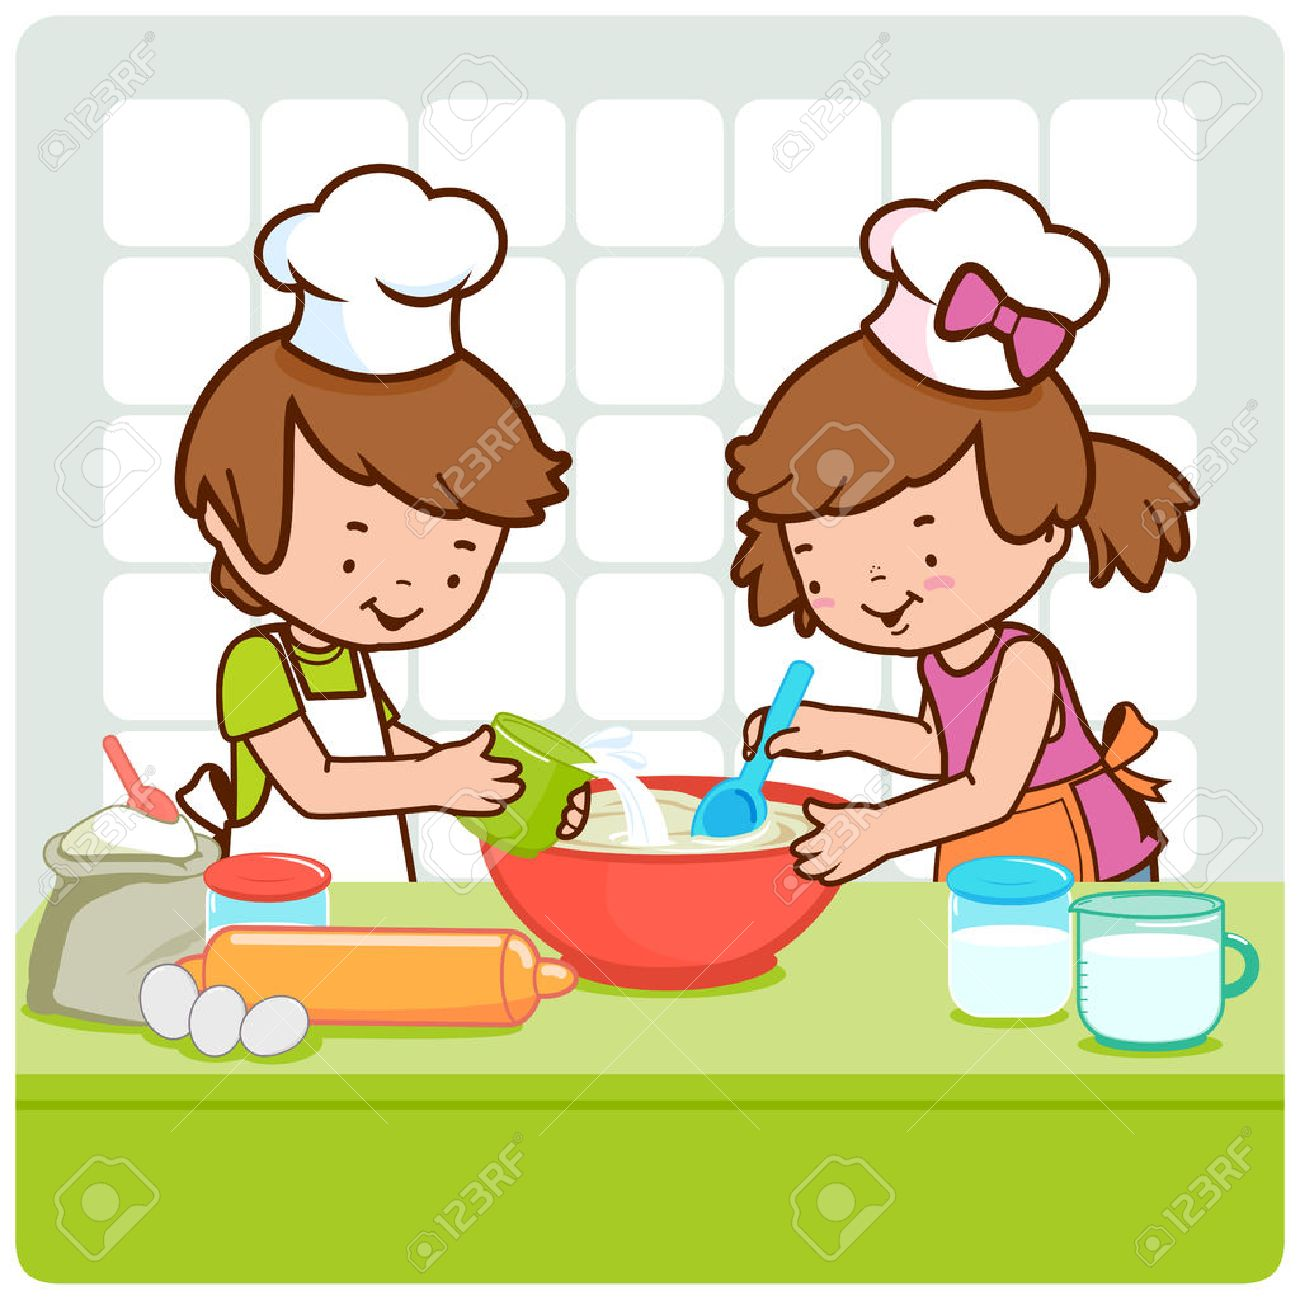 children cooking in the kitchen royalty free cliparts vectors and rh 123rf com kids cooking clip art free